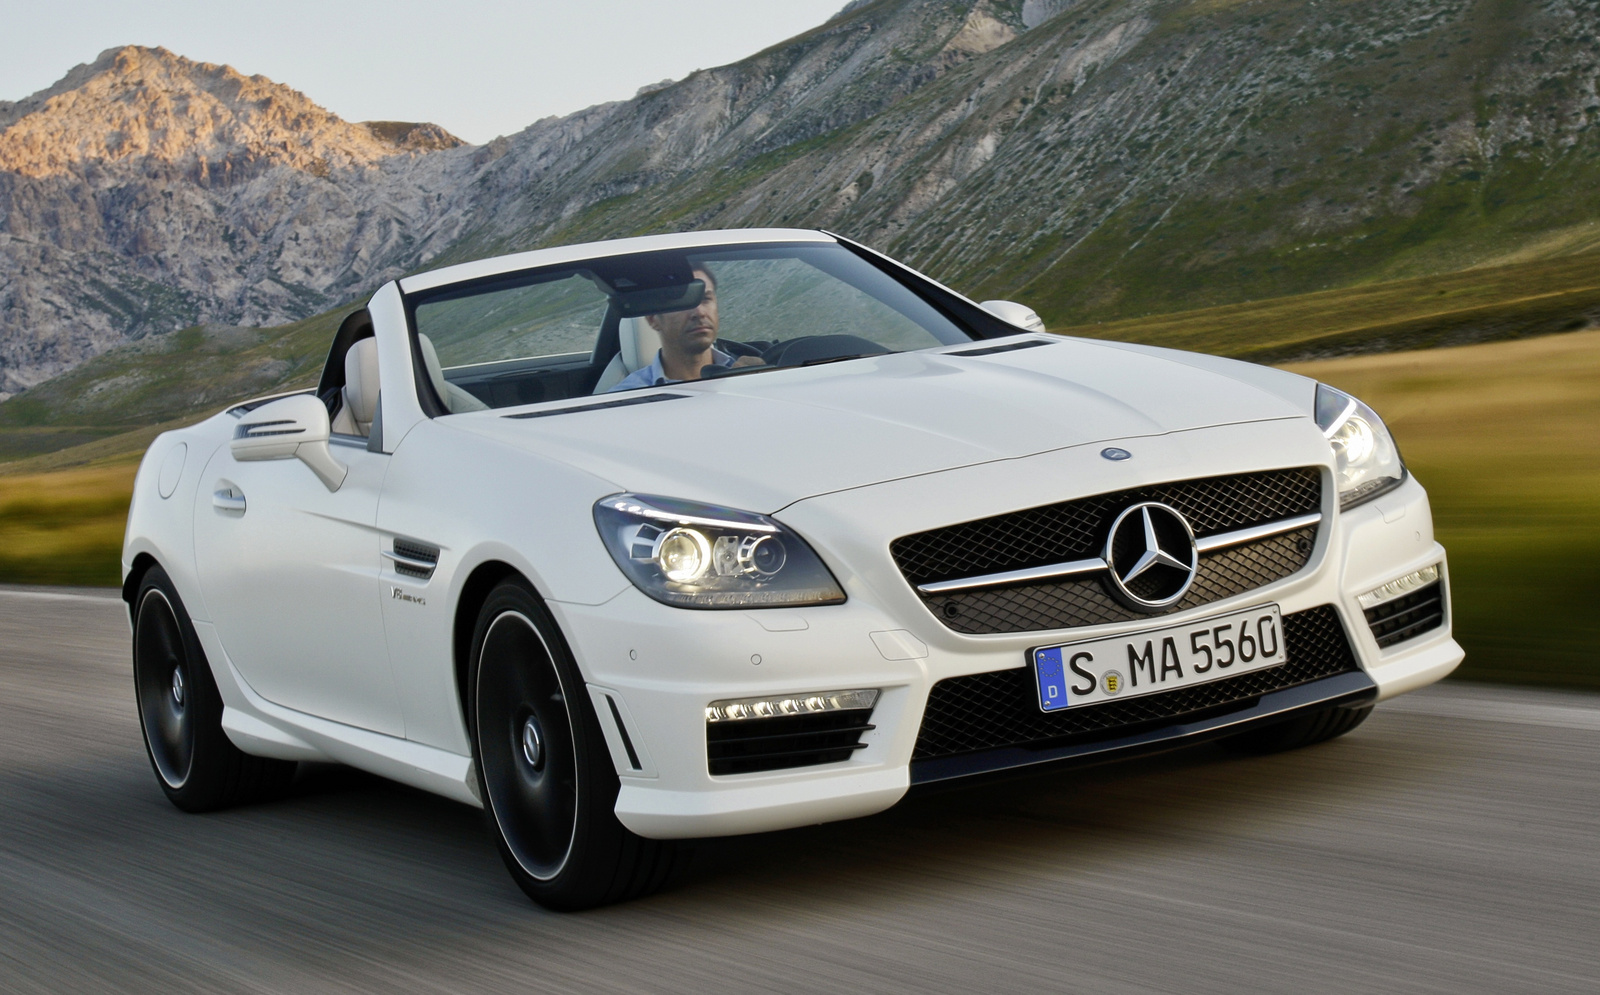 New 2014 2015 2016 mercedes benz slk class for sale for Benz mercedes for sale